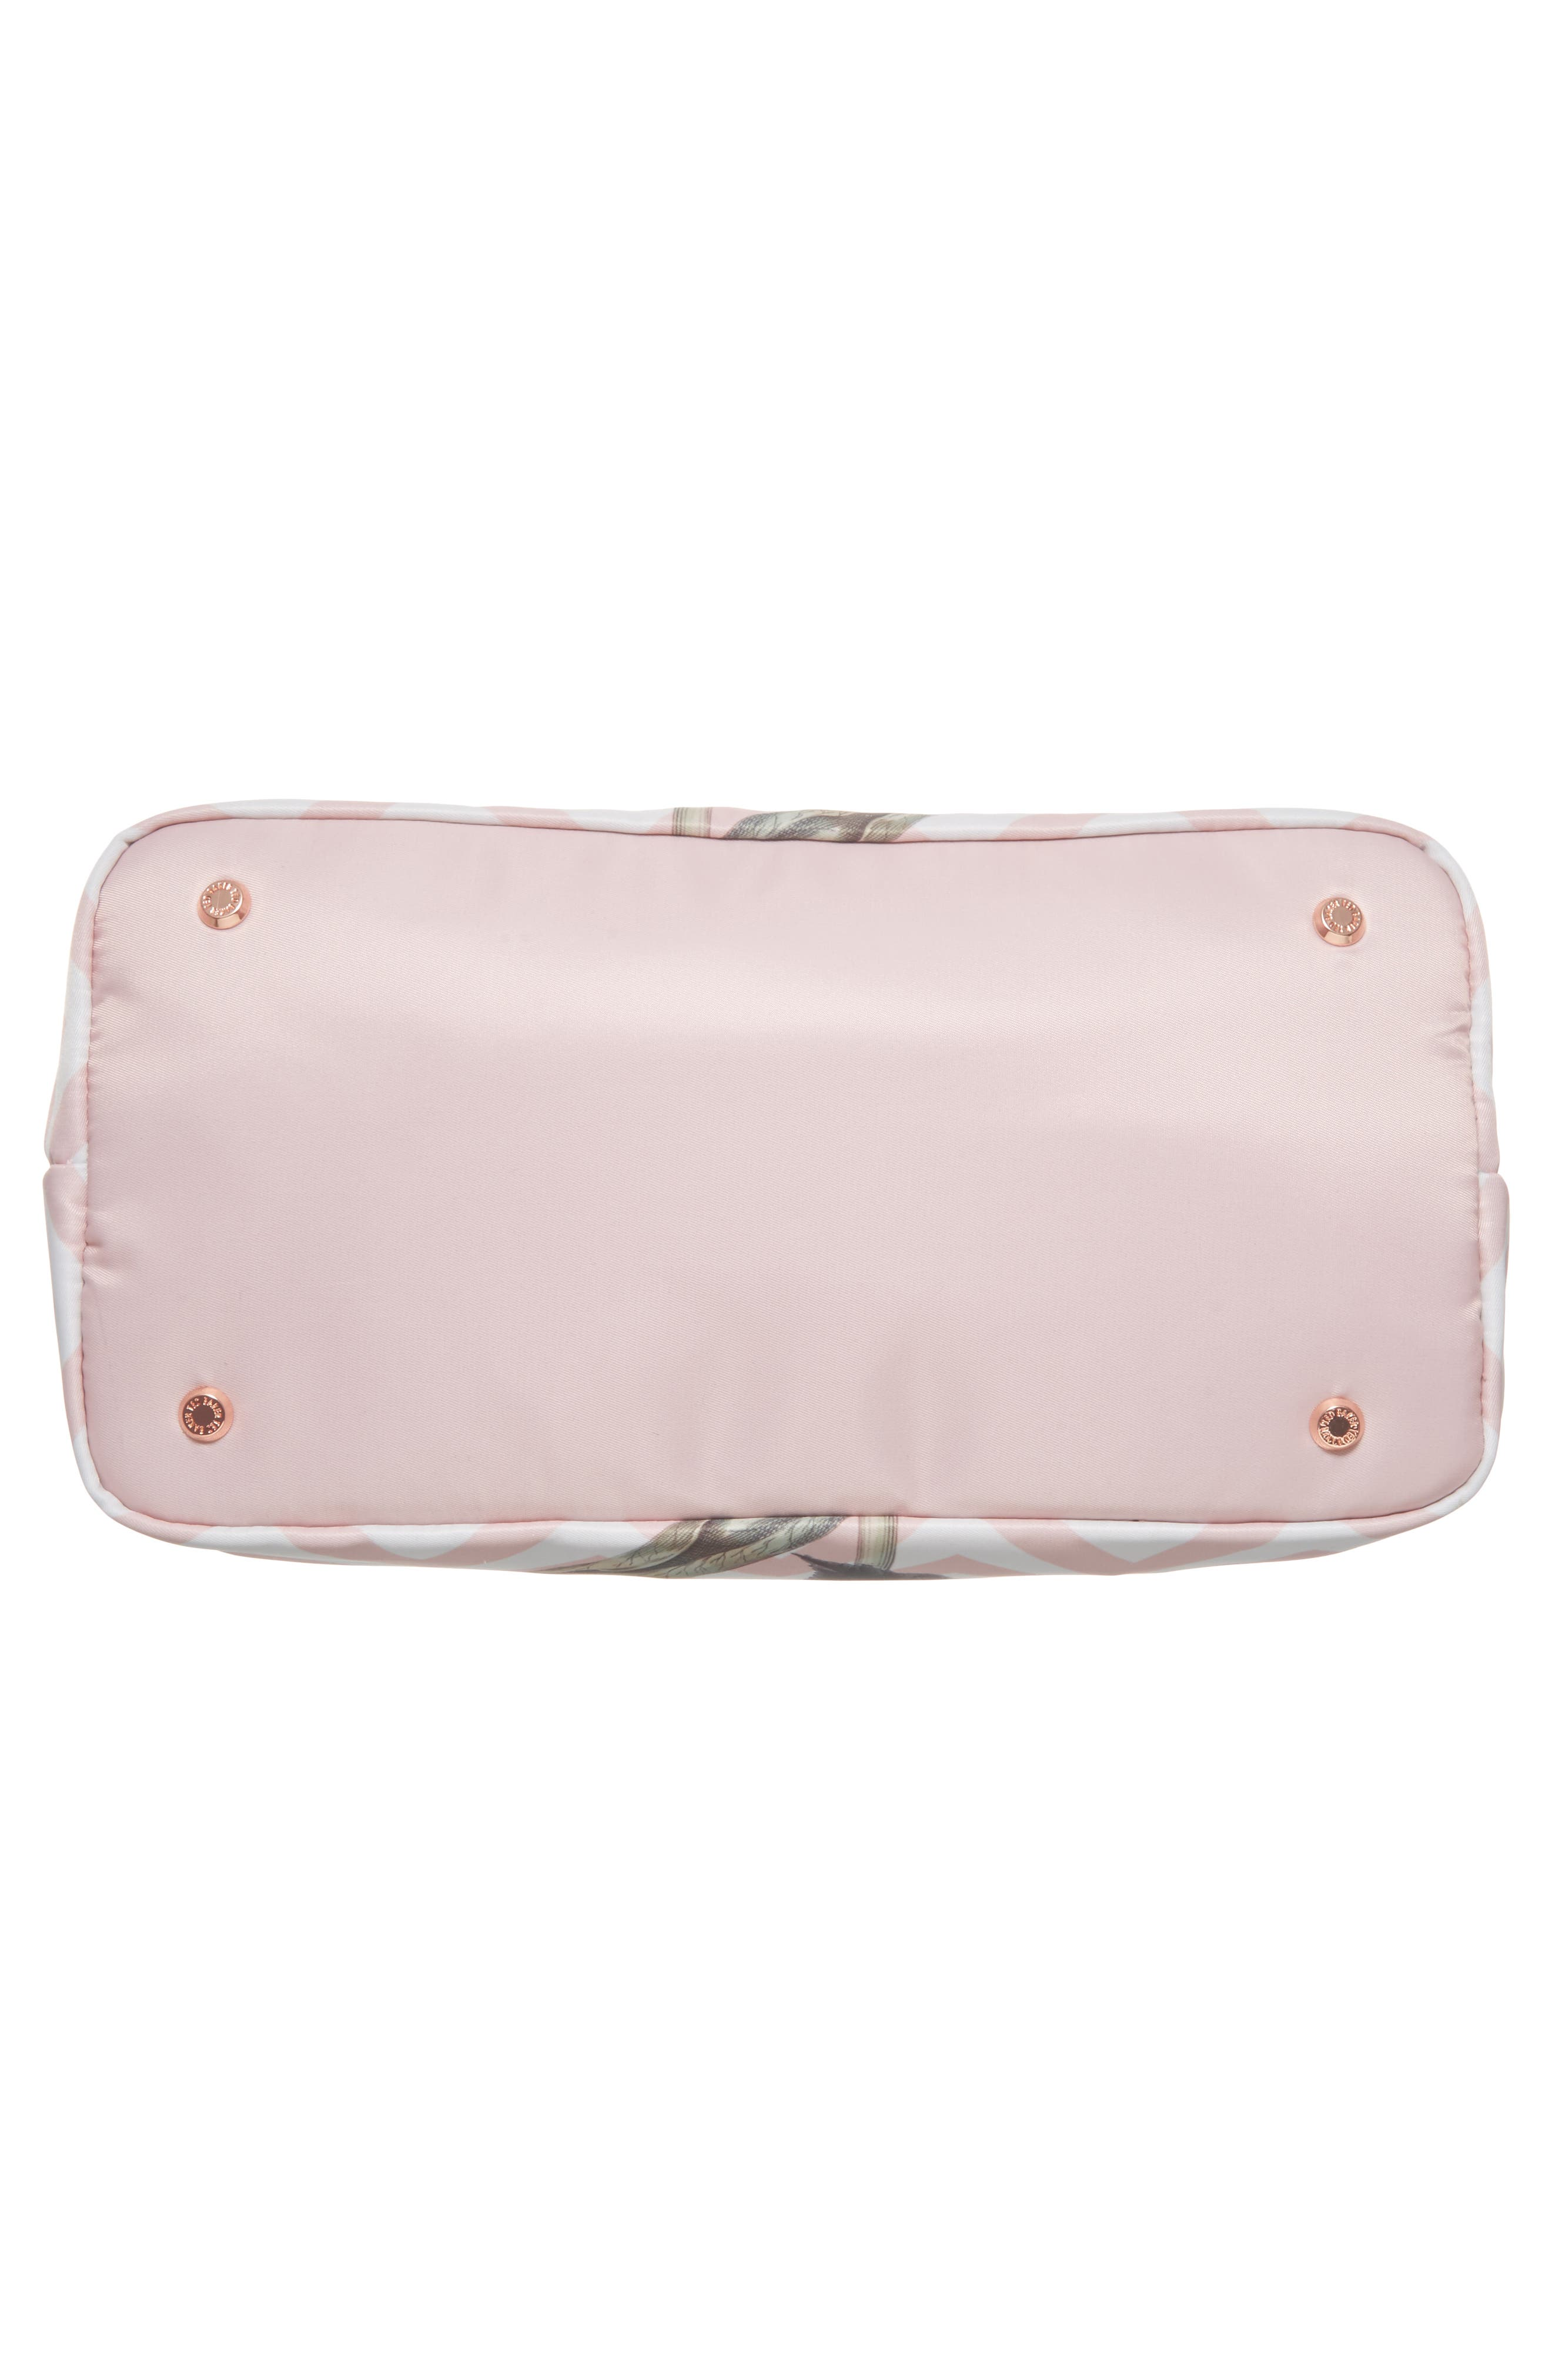 Small Palace Gardens Tote,                             Alternate thumbnail 6, color,                             Dusky Pink